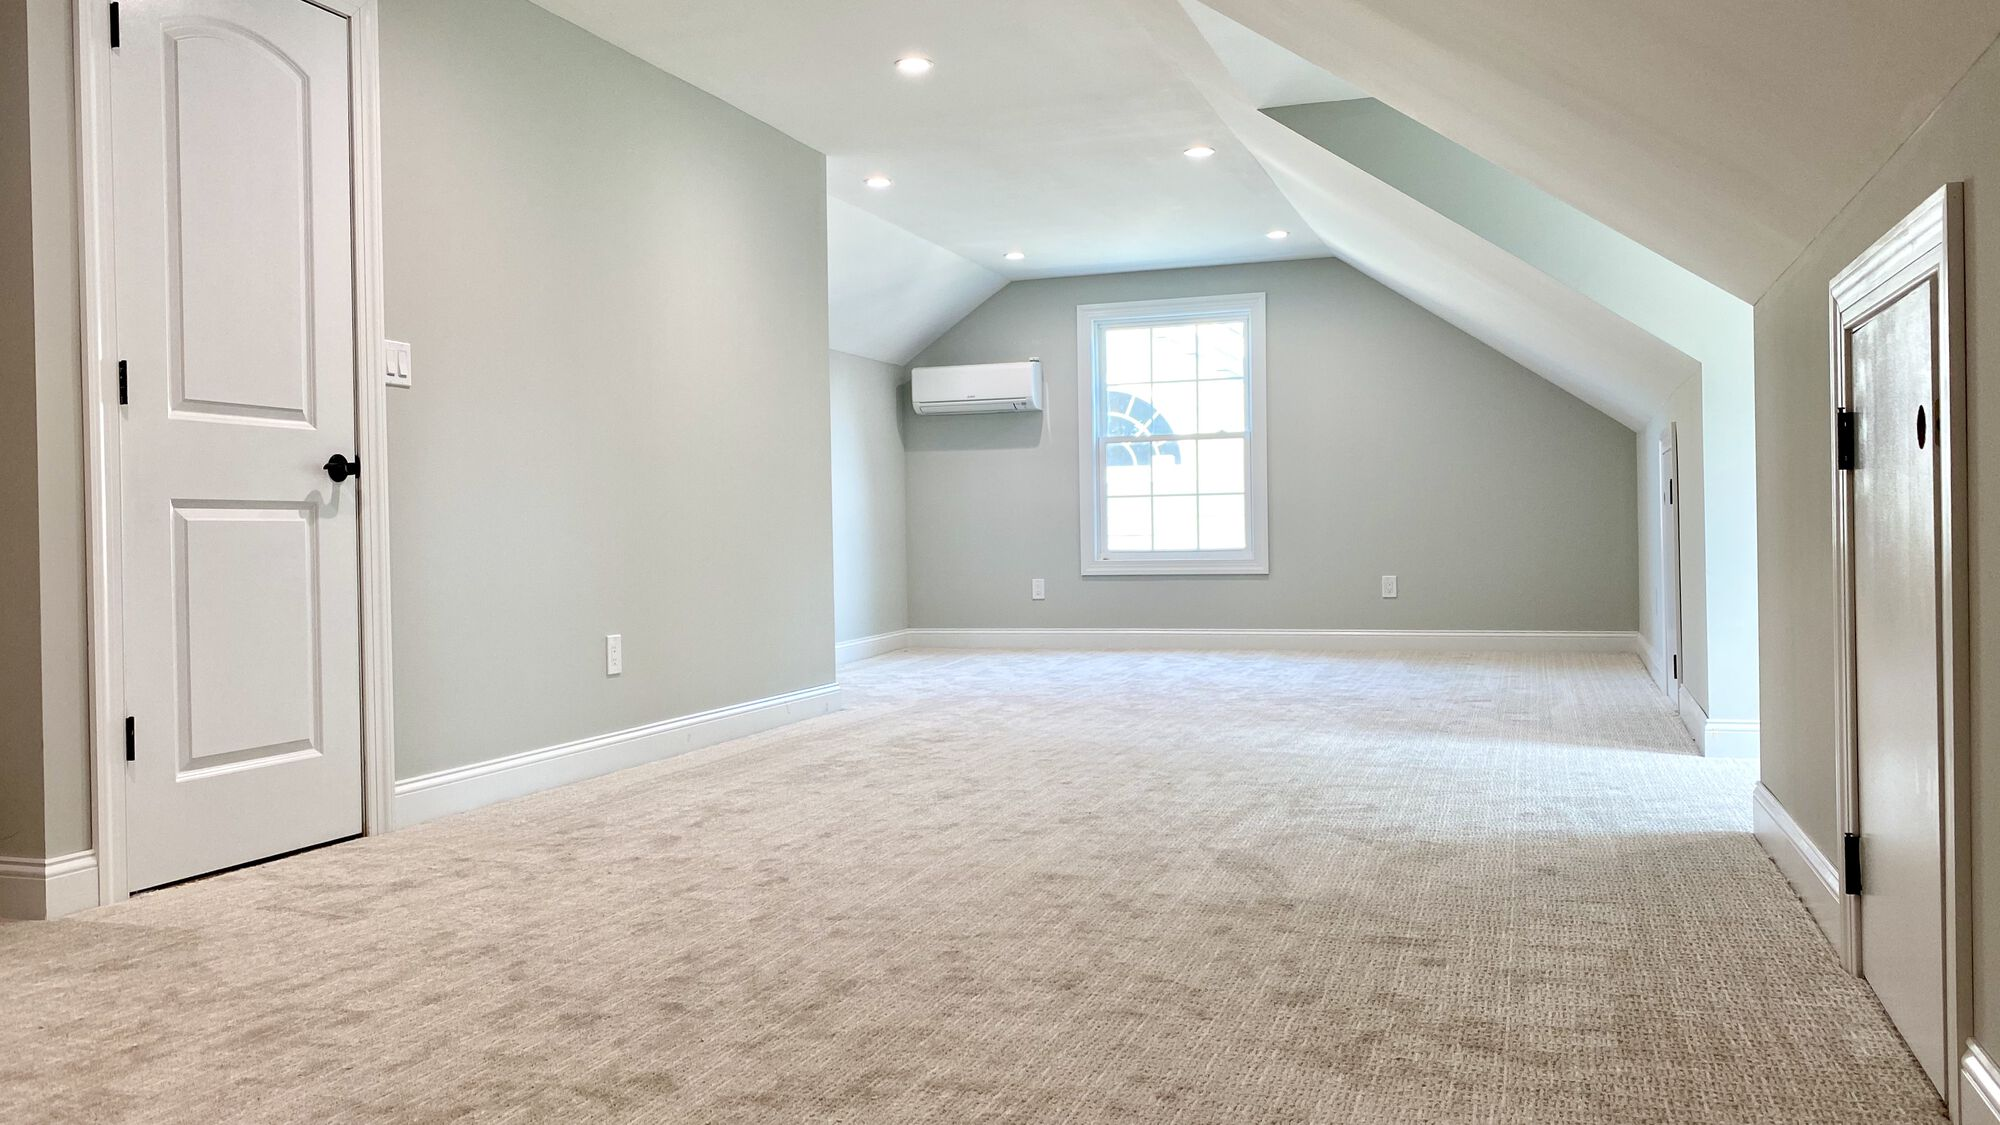 Attic Finished with Dormers, HVAC, Electrical Wiring, Office Space and Storage in Westfield, Union County NJ